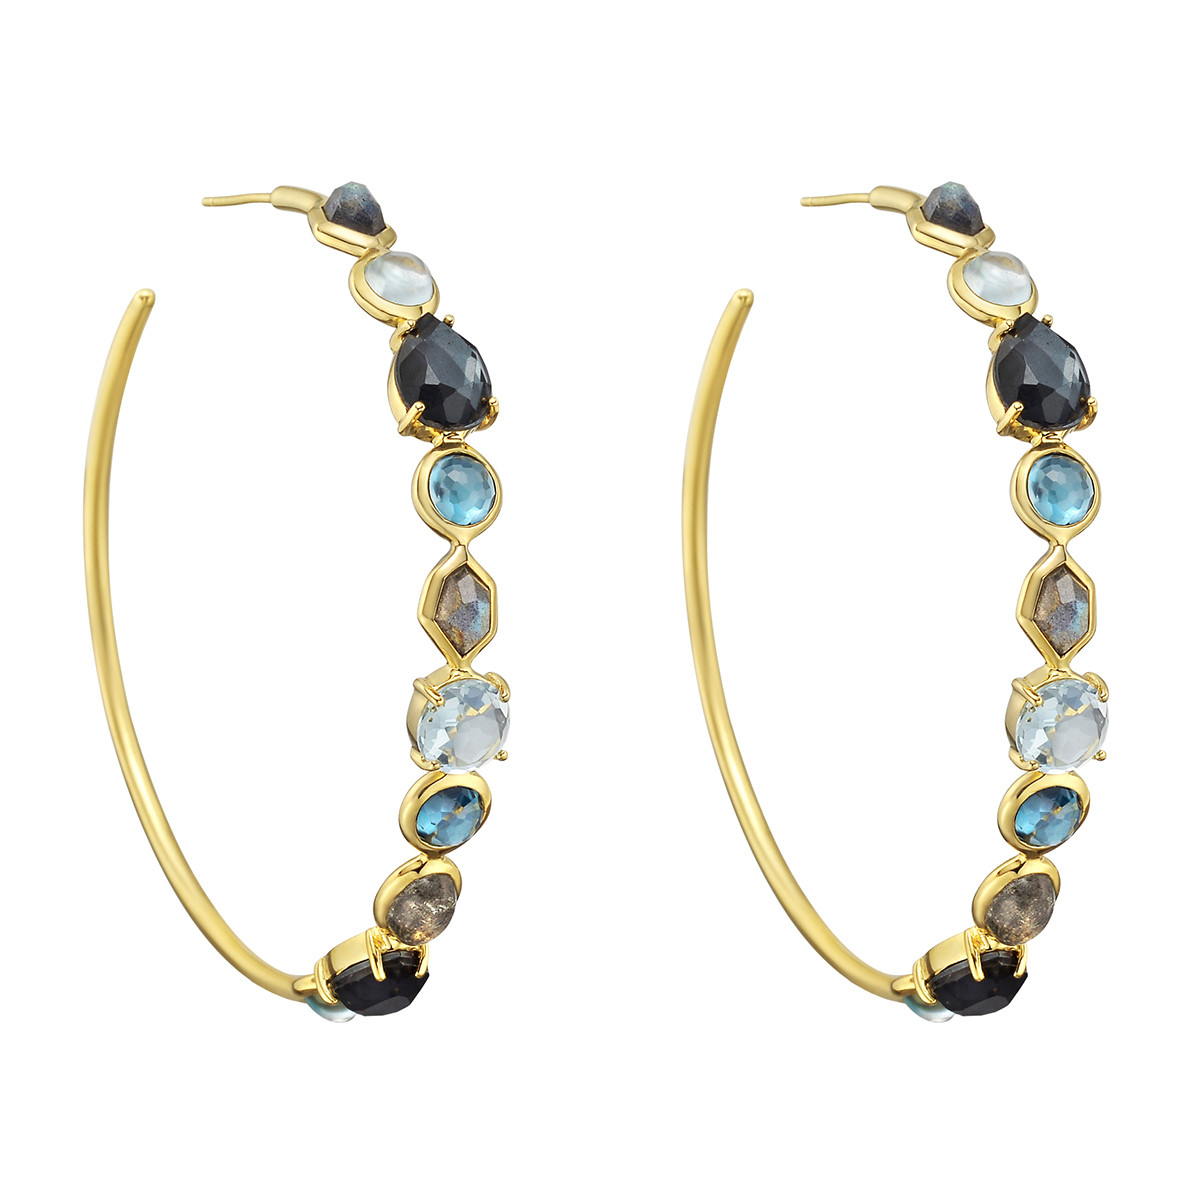 18k Yellow Gold Gem Set Rock Candy Hoop Earrings